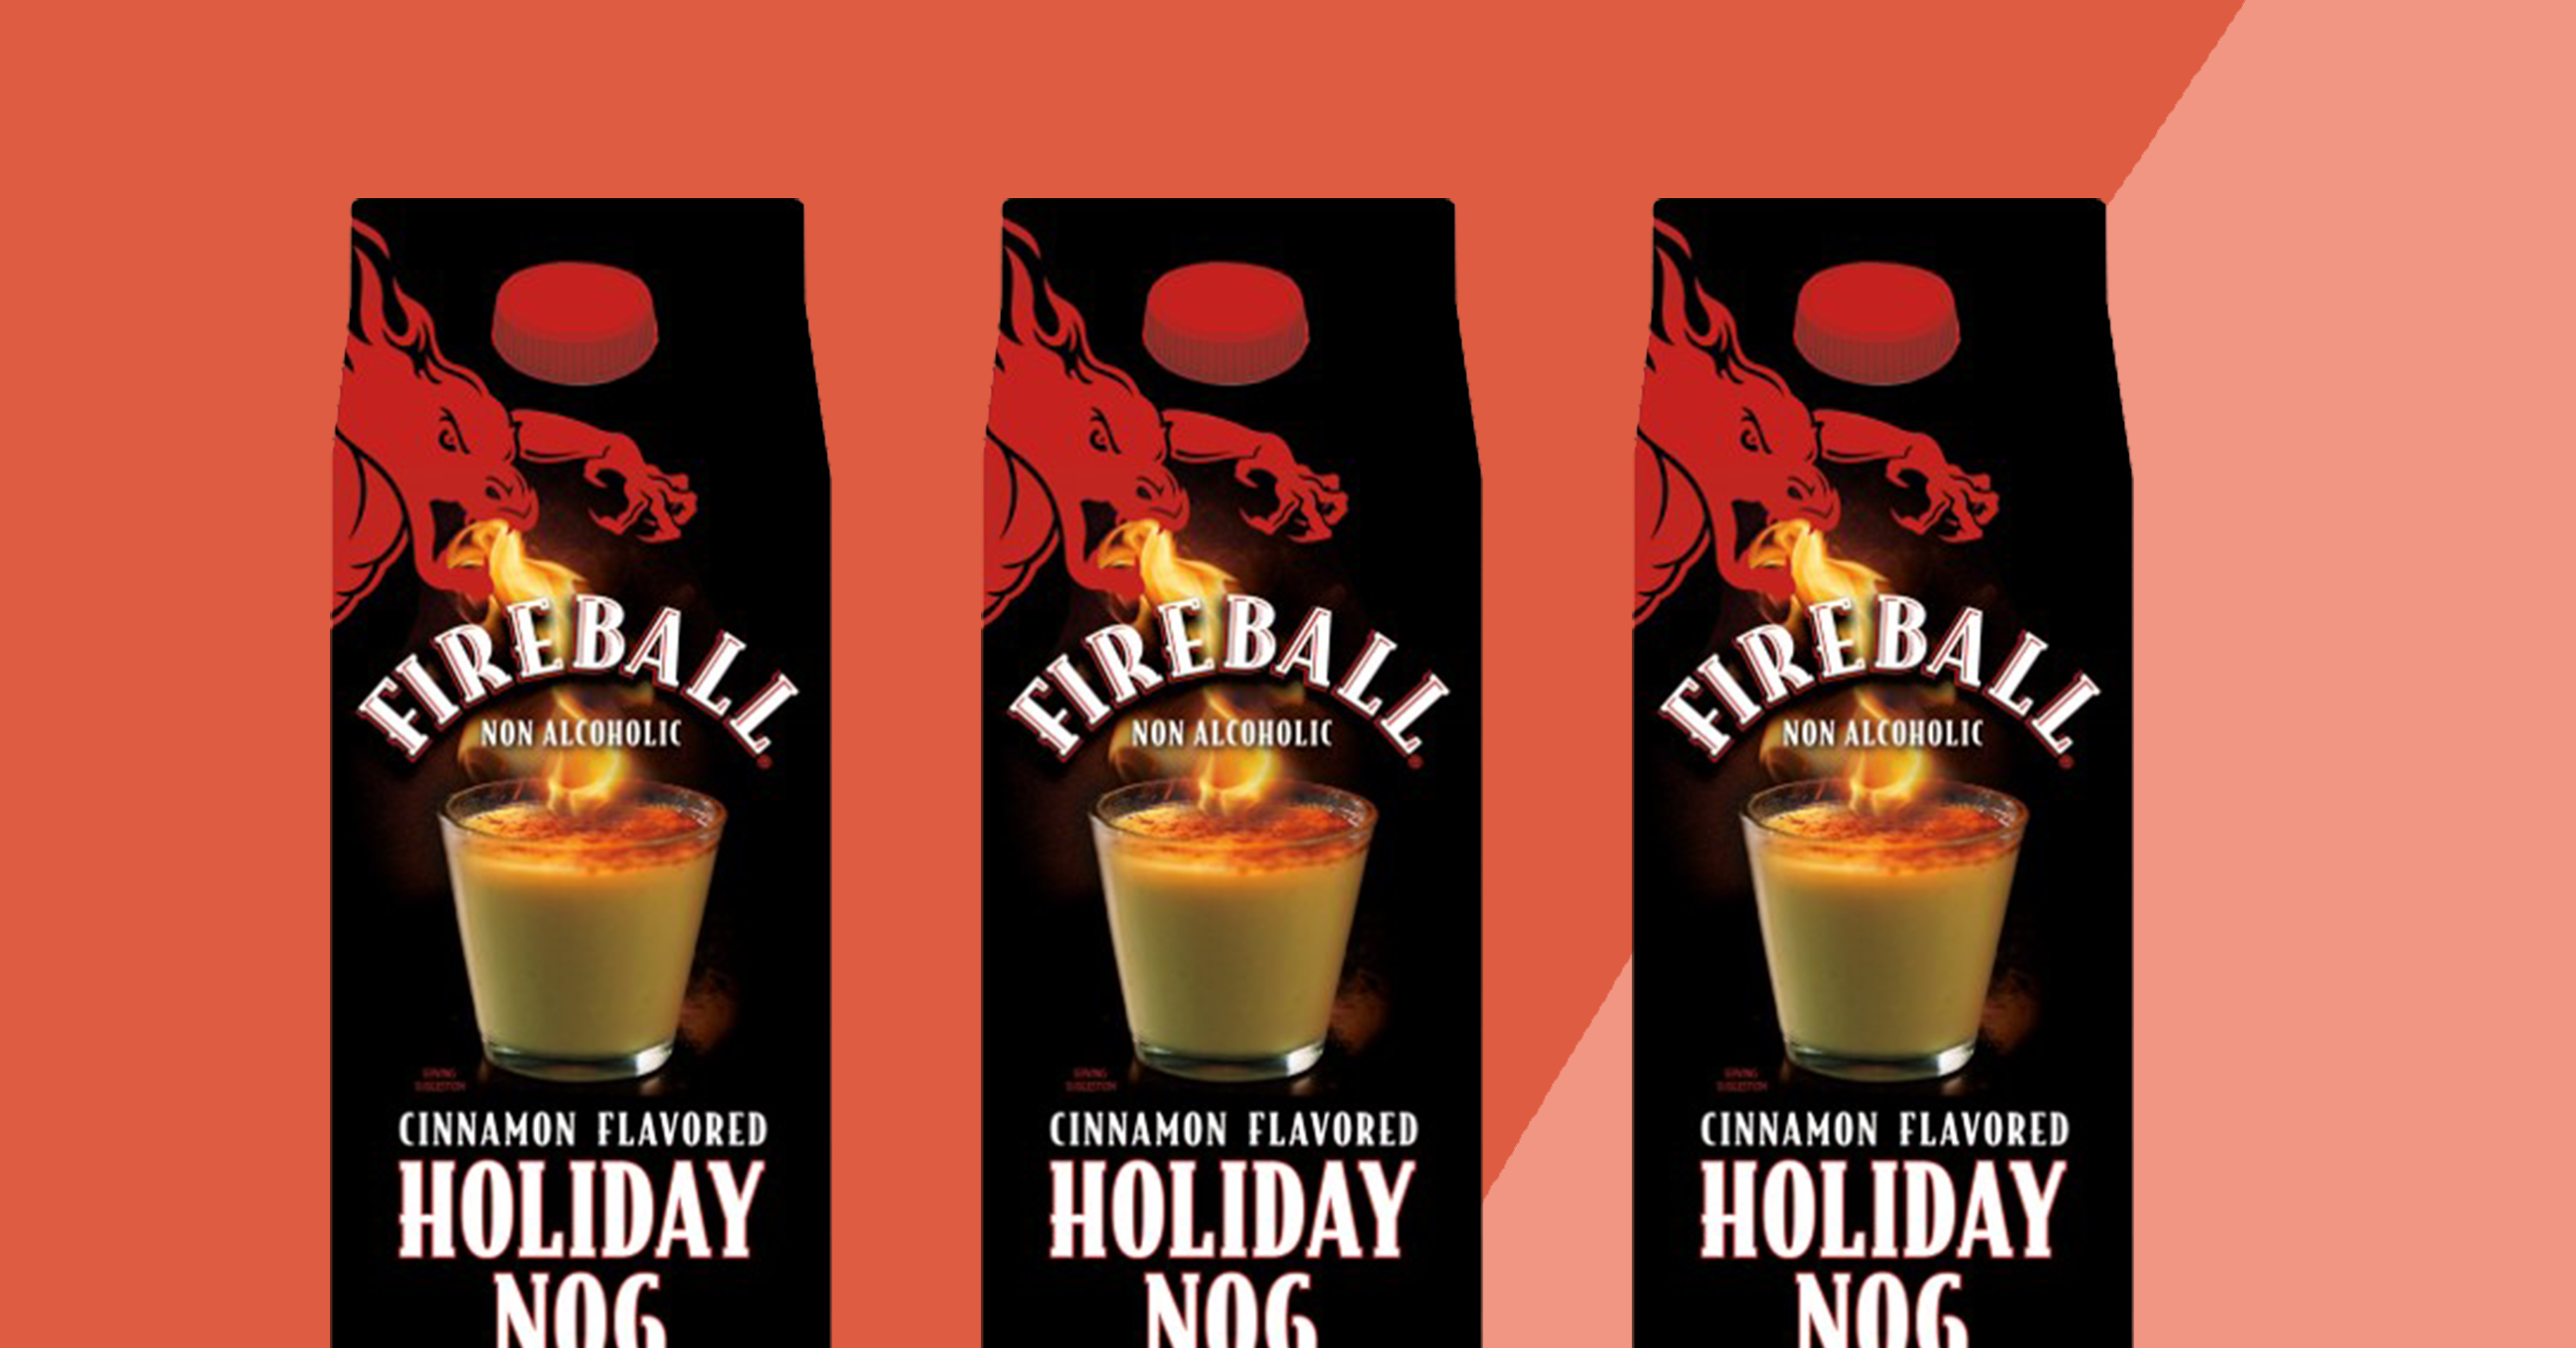 Fireball-Flavored Eggnog Is the Holiday Gift We Didn't Know We Wanted